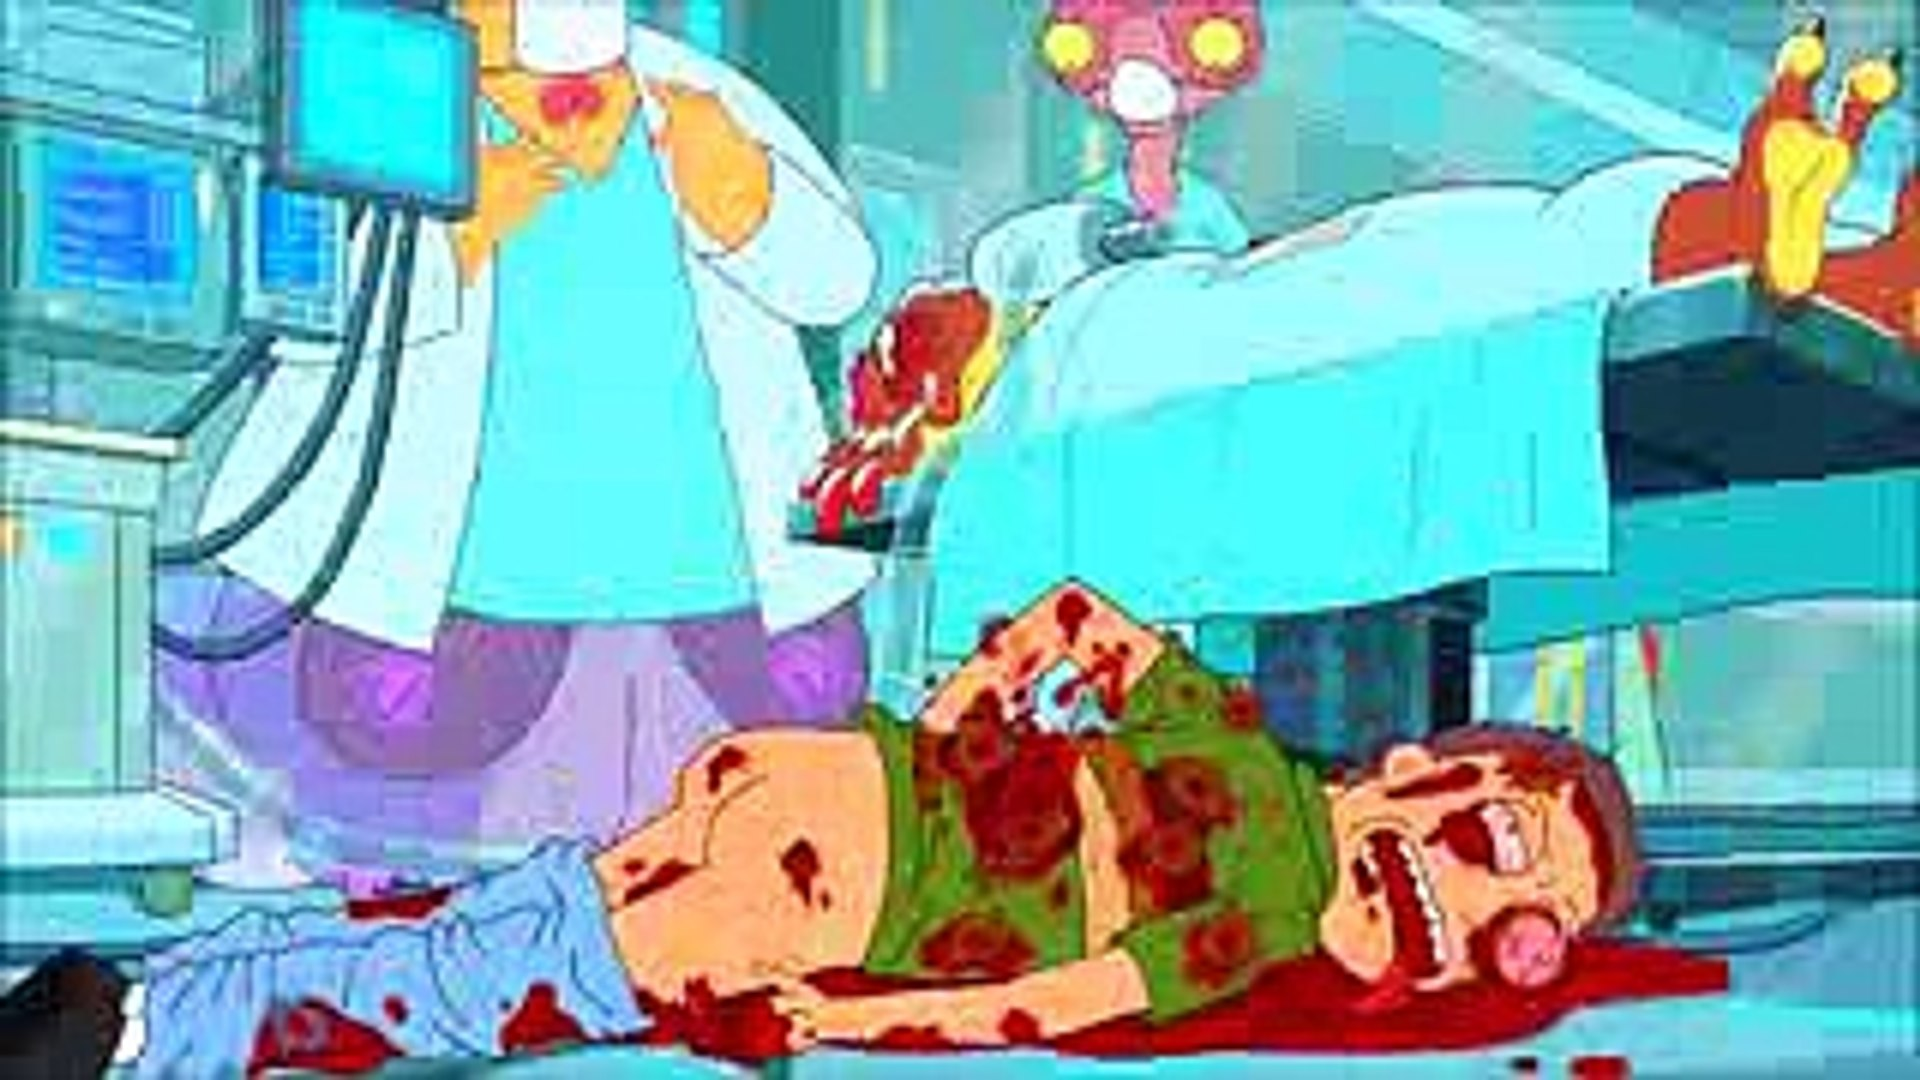 Rick and Morty - Both Jerry's death scenes